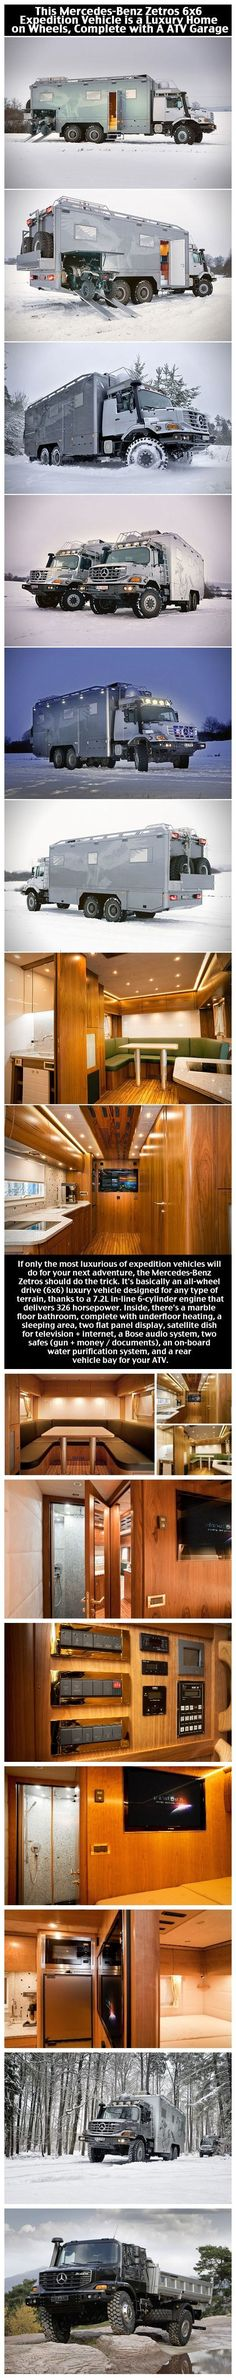 Mercedes Benz Zetros 6x6 Is A Luxury Home On Wheels With ATV Garage...my idea of a 'Westie'